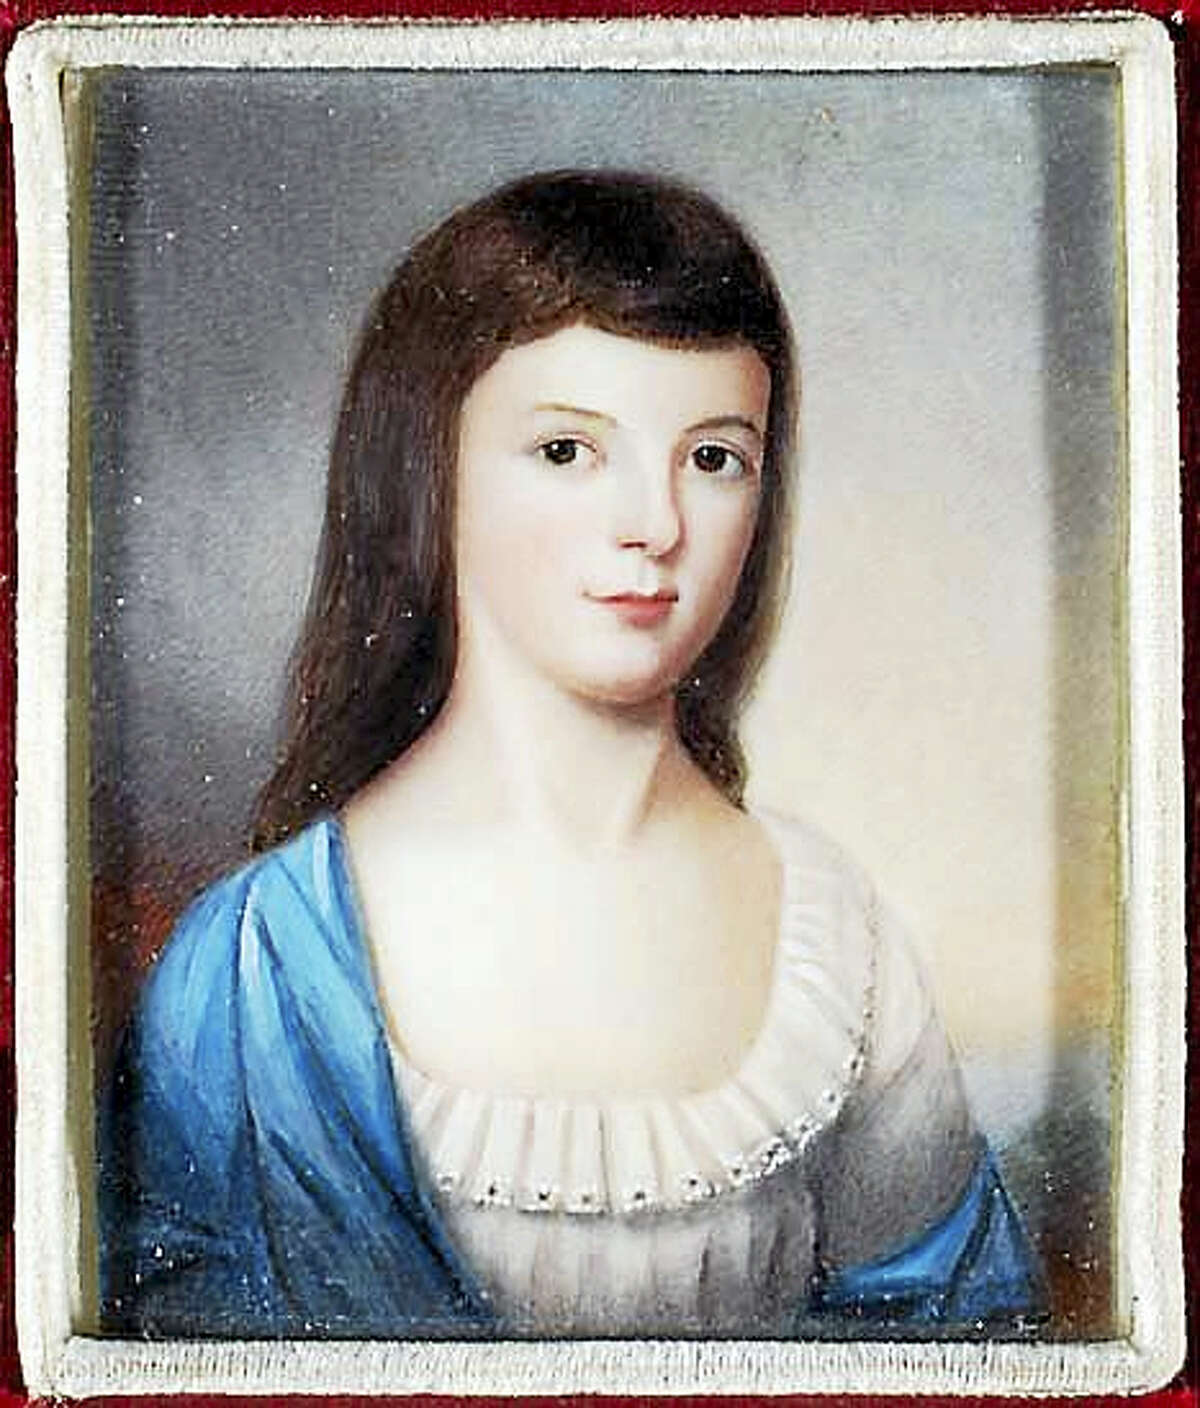 Miniature portrait paintings by Anson Dickinson are the topic of discussion for the first of the History Bites Lecture Series on May 25.